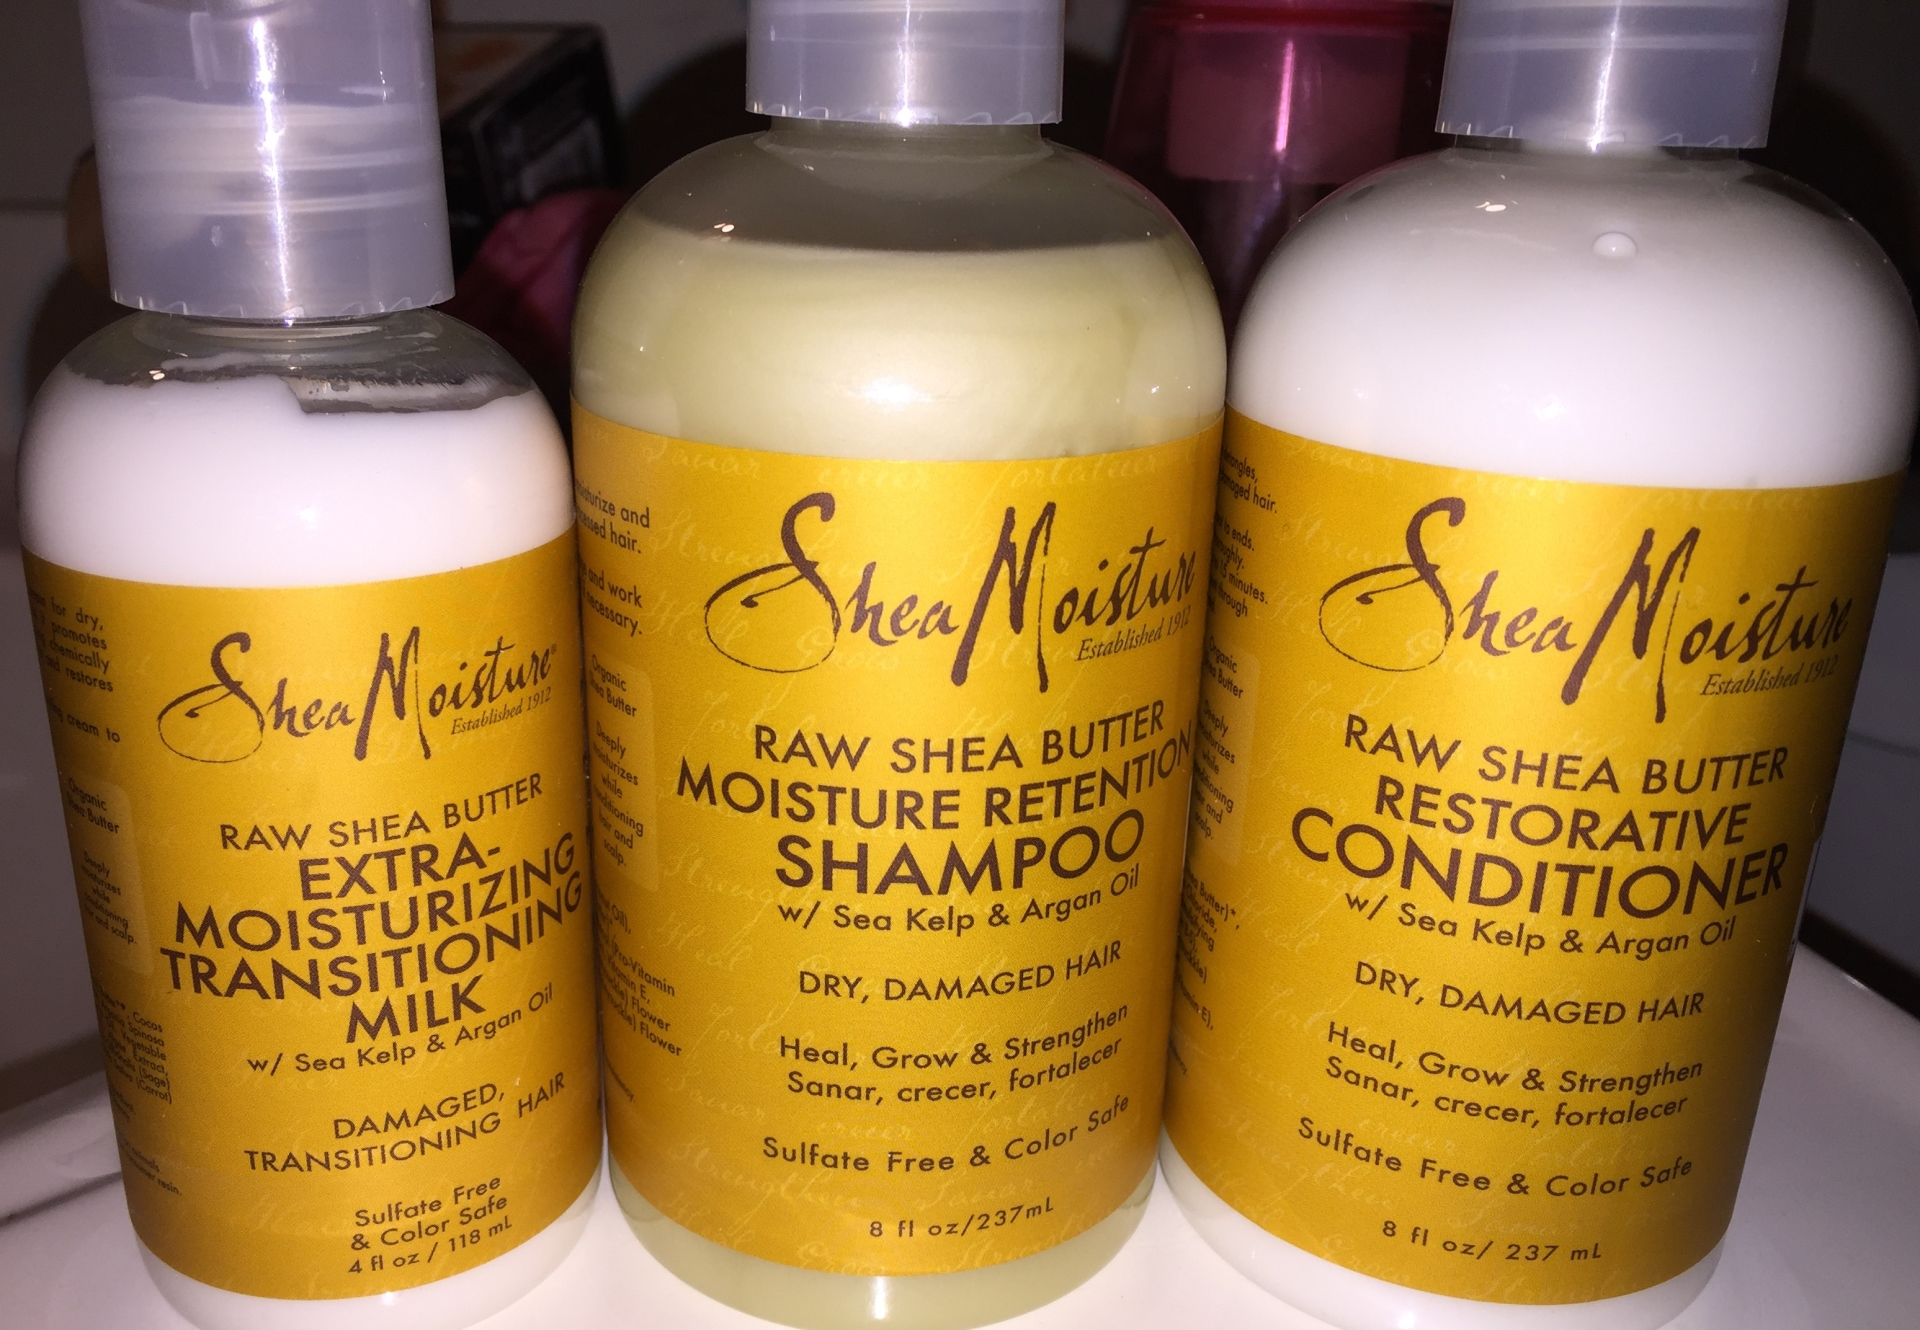 NATURALLY ENHANCE THE GROWTH & BEAUTY OF YOUR HAIR